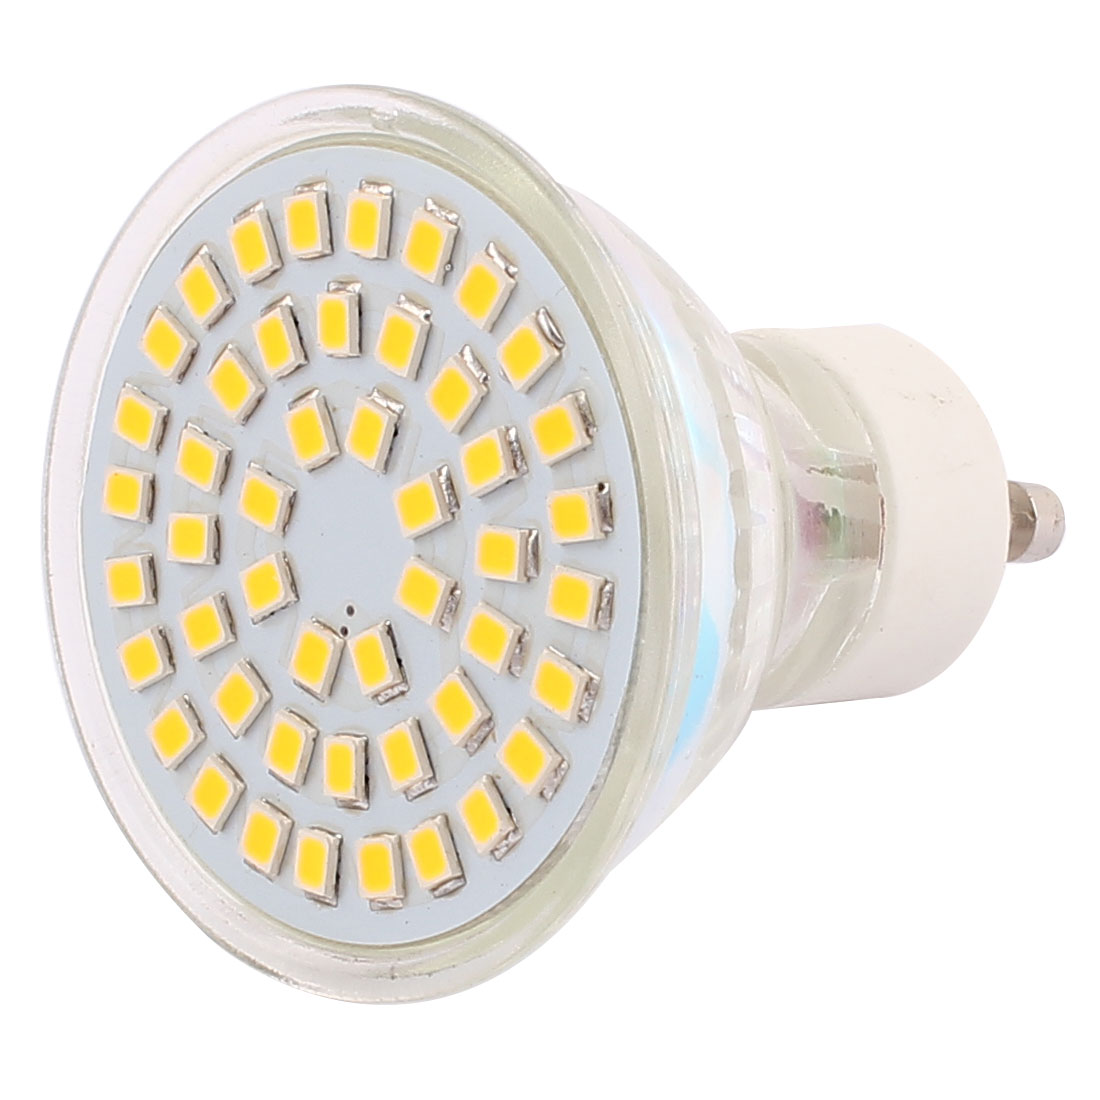 110V GU10 LED Light 4W 2835 SMD 48 LEDs Spotlight Down Lamp Bulb Lighting Warm White